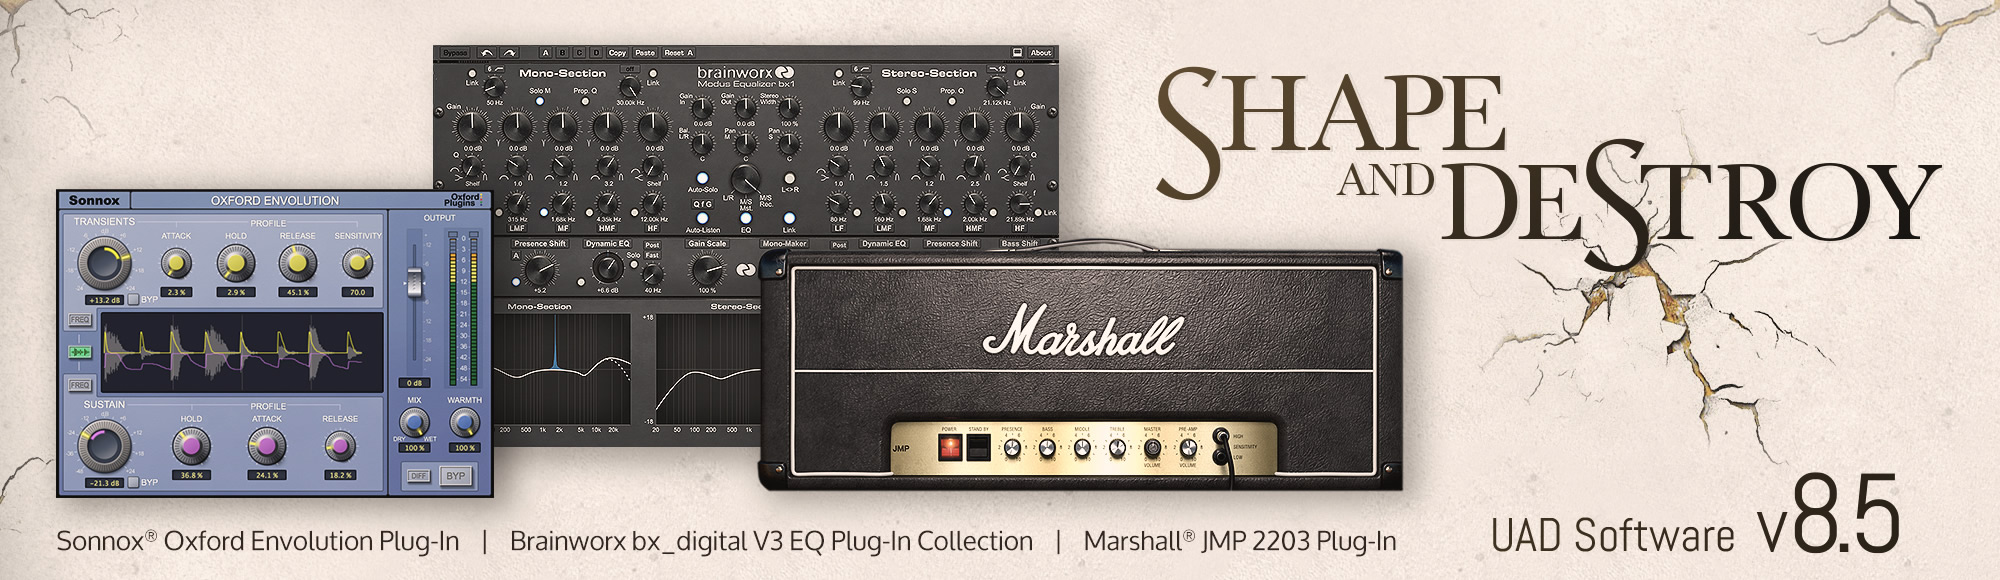 UAD Software Version 8.5, featuring the Marshall JMP 2203 Amplifier, Sonnox Oxford Envolution, and Brainworx bx_digital V3 EQ Plug-In Collection.